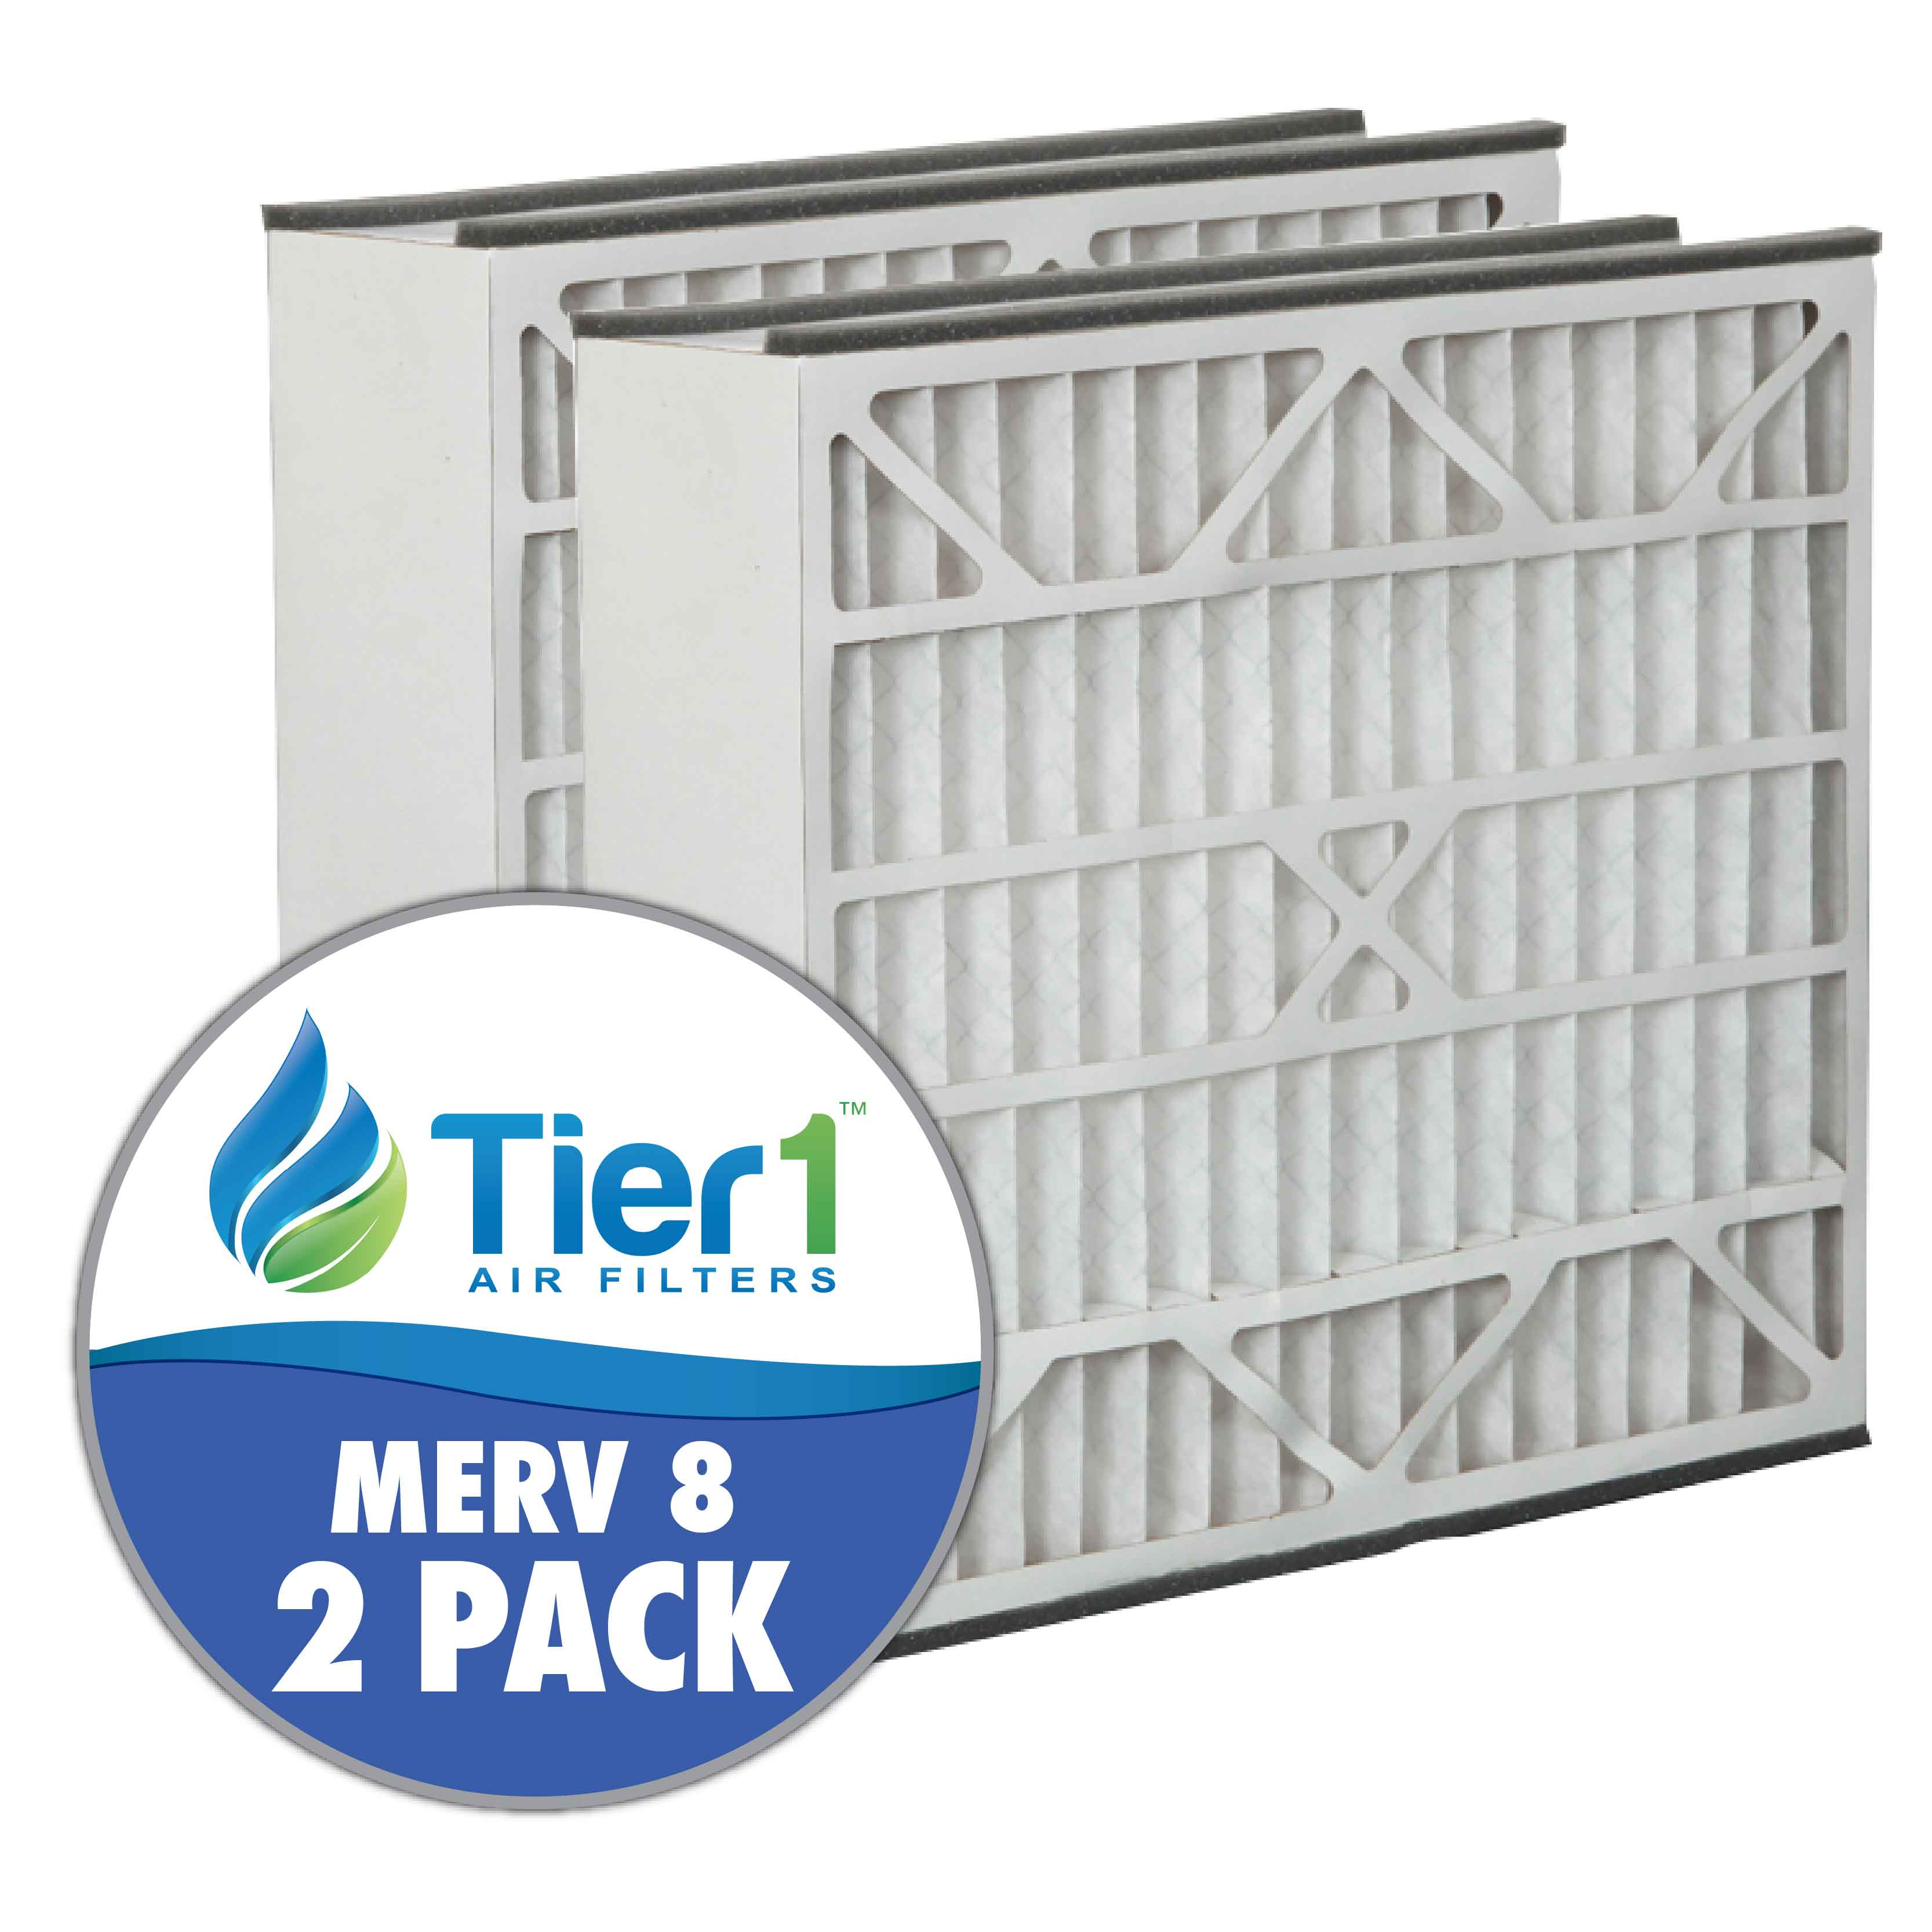 Tier1 brand replacement for Skuttle #000-0448-003 - 20 x 20 x 5 - MERV 8 (2-Pack) TIER1-DPFR20X20X5DSL